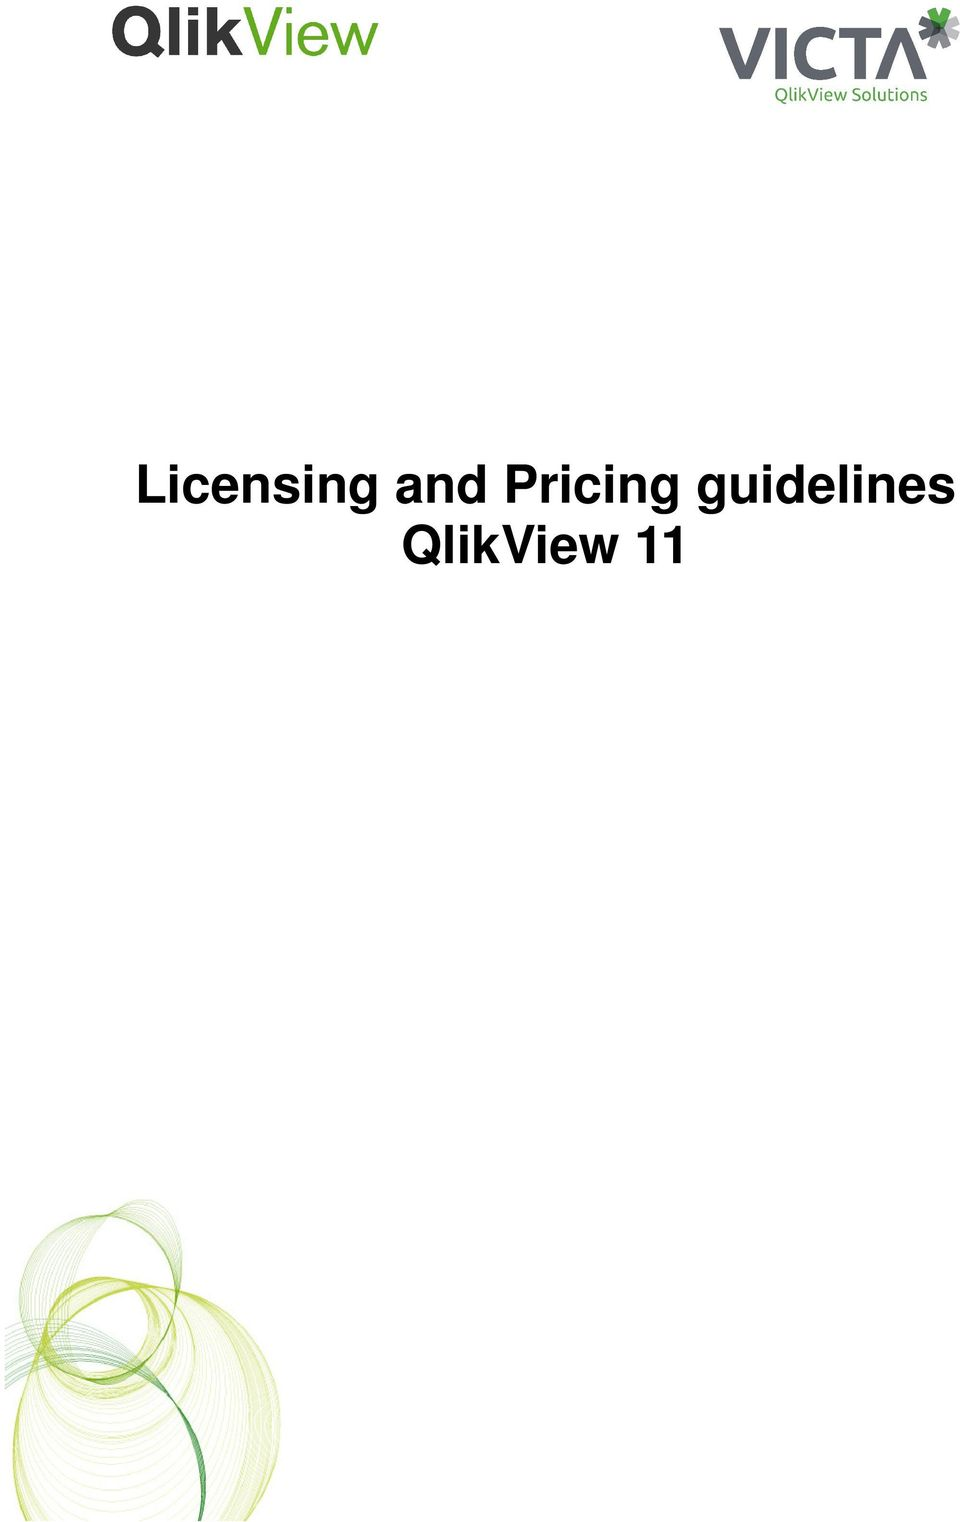 Licensing and Pricing guidelines QlikView 11 - PDF